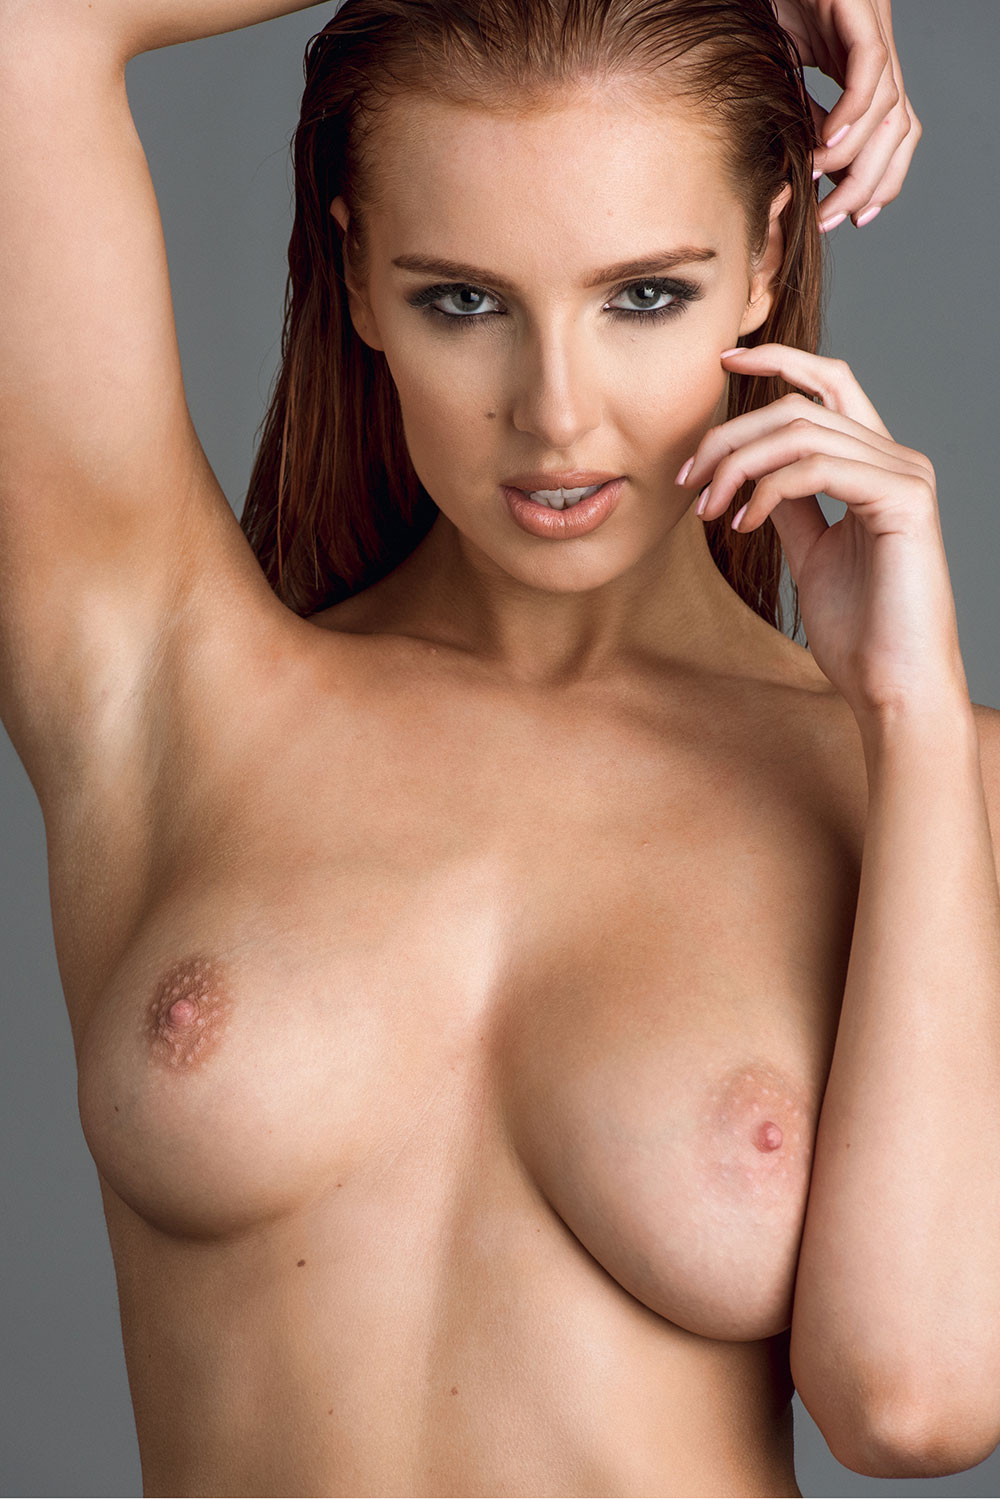 Topless Photoshoot Of Lis...